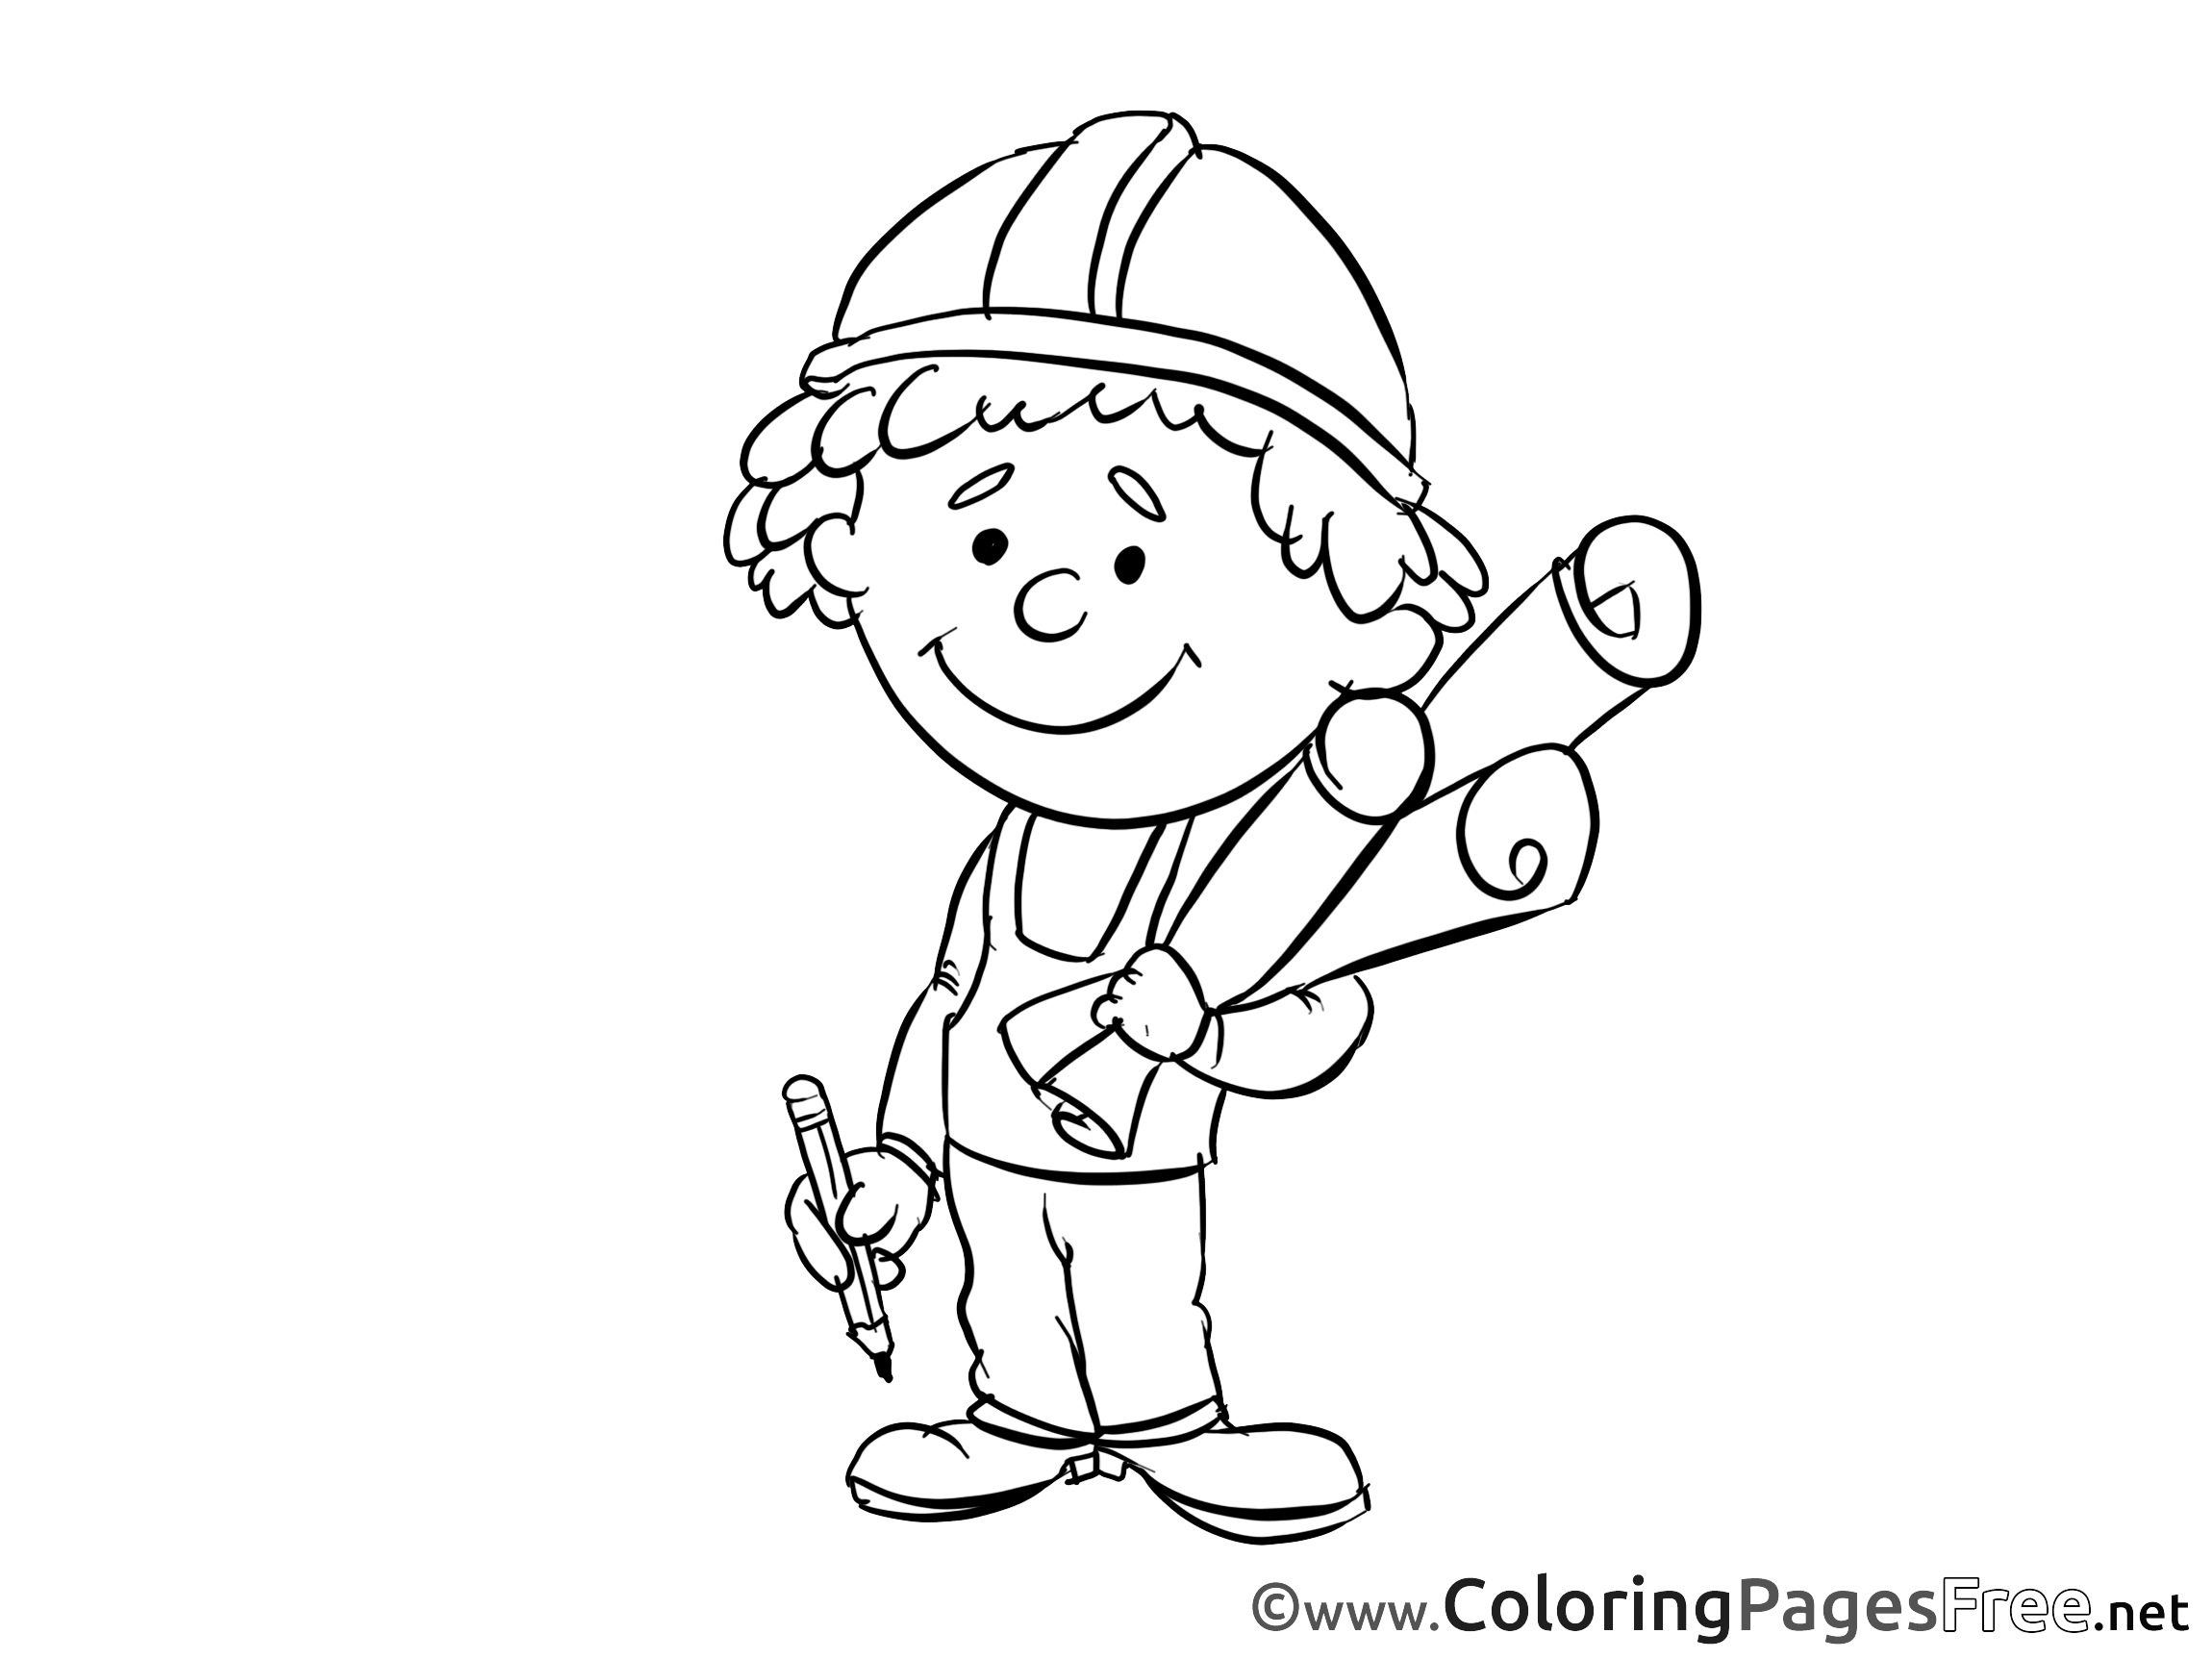 Clipart 9czkAyMcE furthermore Bart Simpson Coloring Pages further How To Encourage And Improve Kids Drawing Activities additionally Horse Head Line Art Drawing Illustration 609948128 likewise 60 Years Bouquet Children Happy Birthday Colouring Page 1429. on art farm